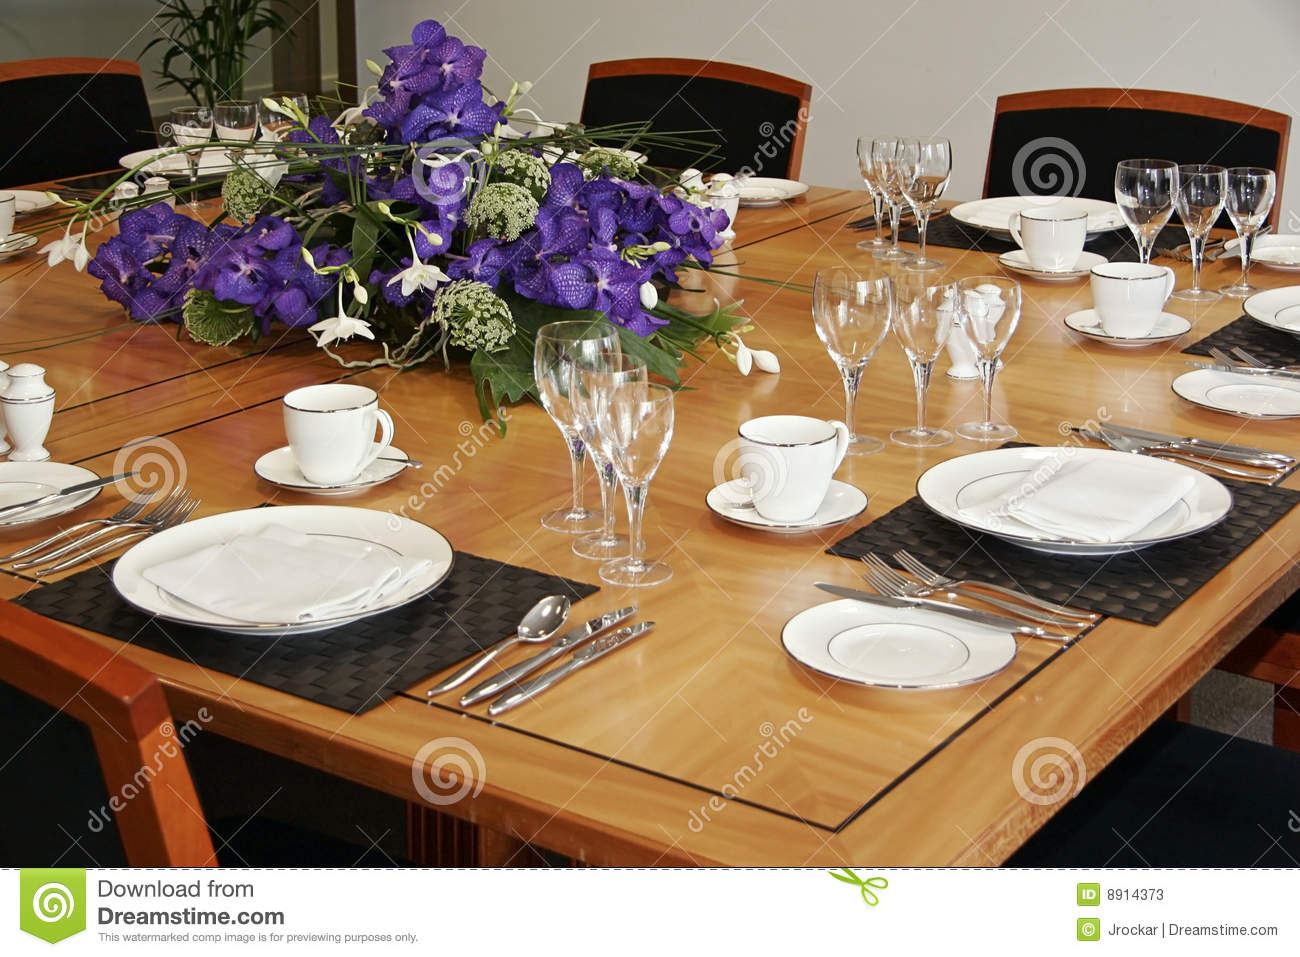 Set restaurant table with flowers royalty free stock photo for On the table restaurant